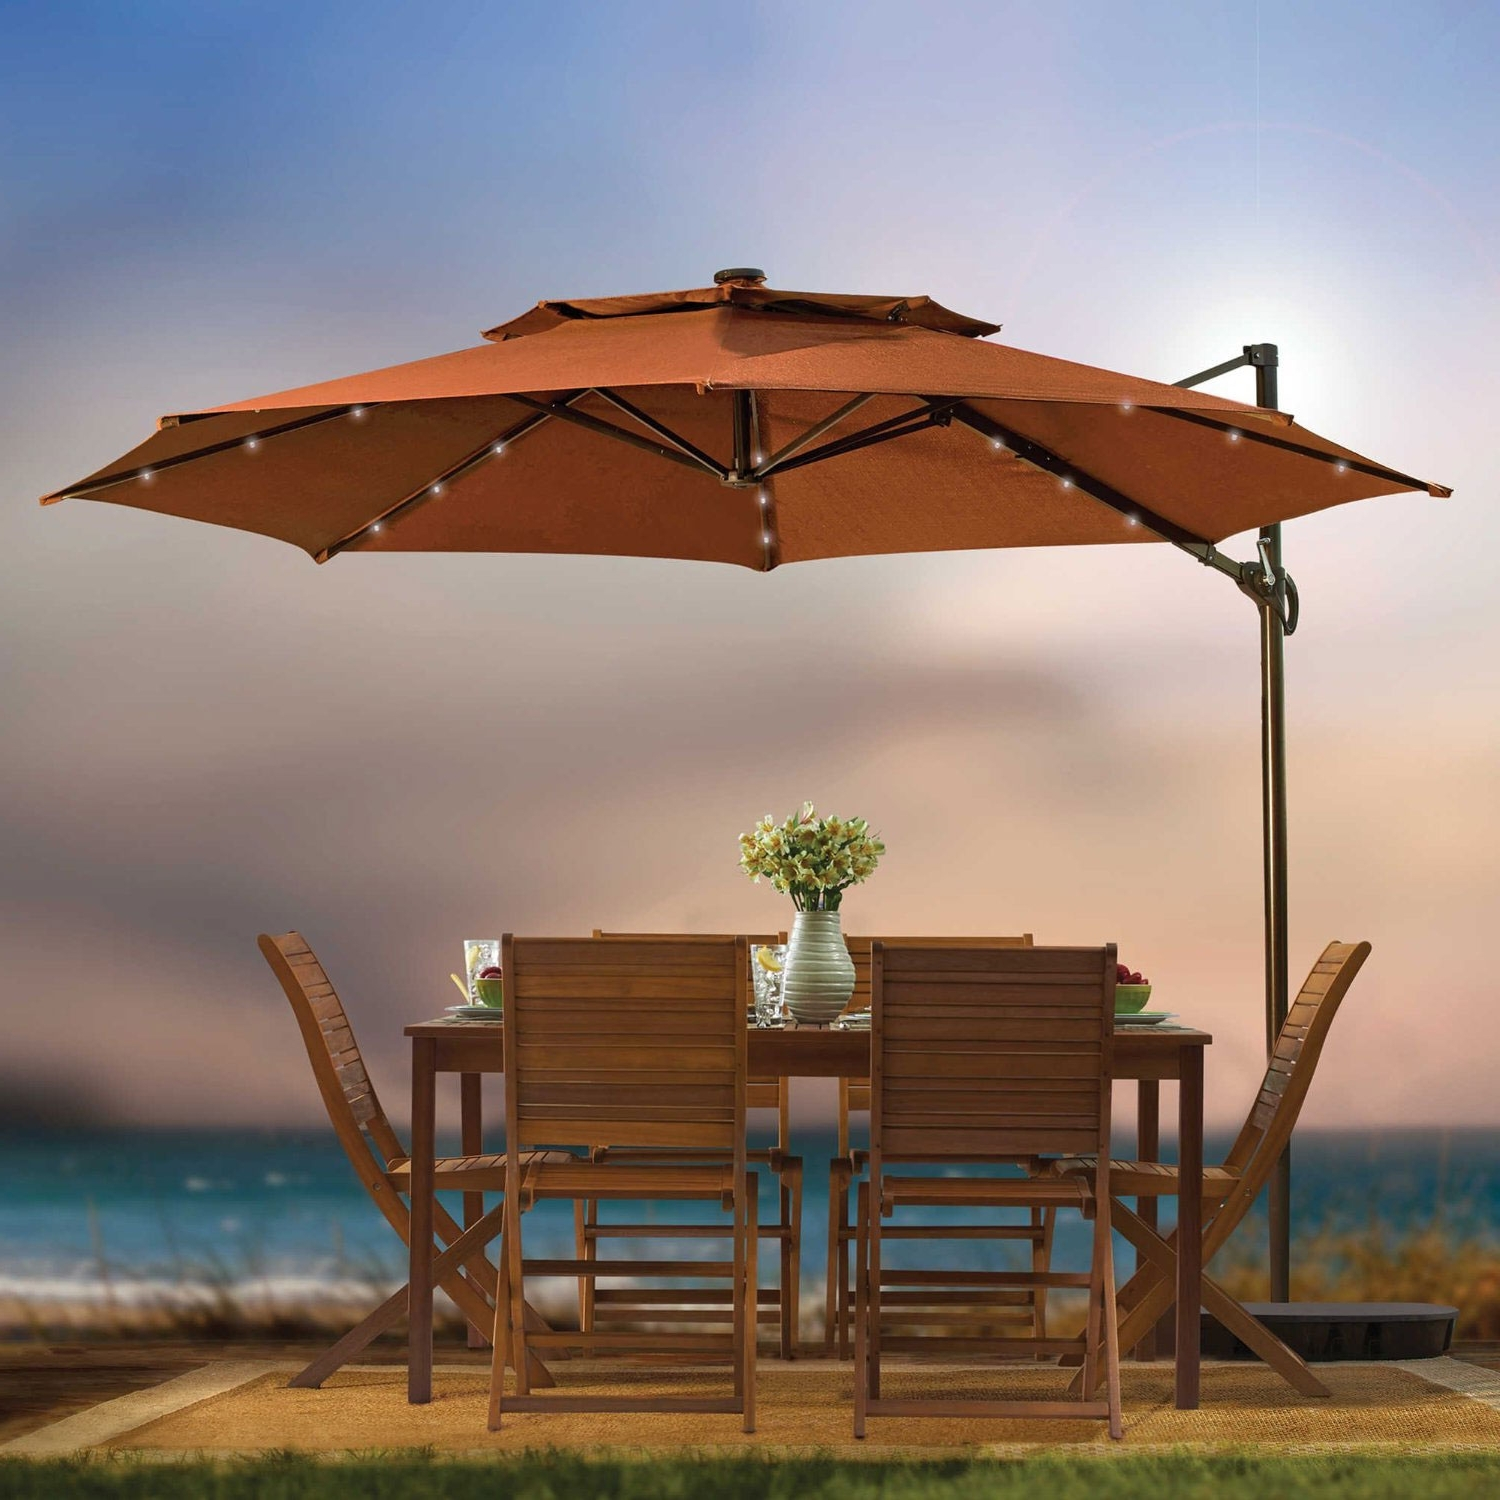 Patio Umbrellas For High Wind Areas Regarding Most Current Best Patio Umbrella – Reviews & Buying Guide (September 2018) (View 14 of 20)